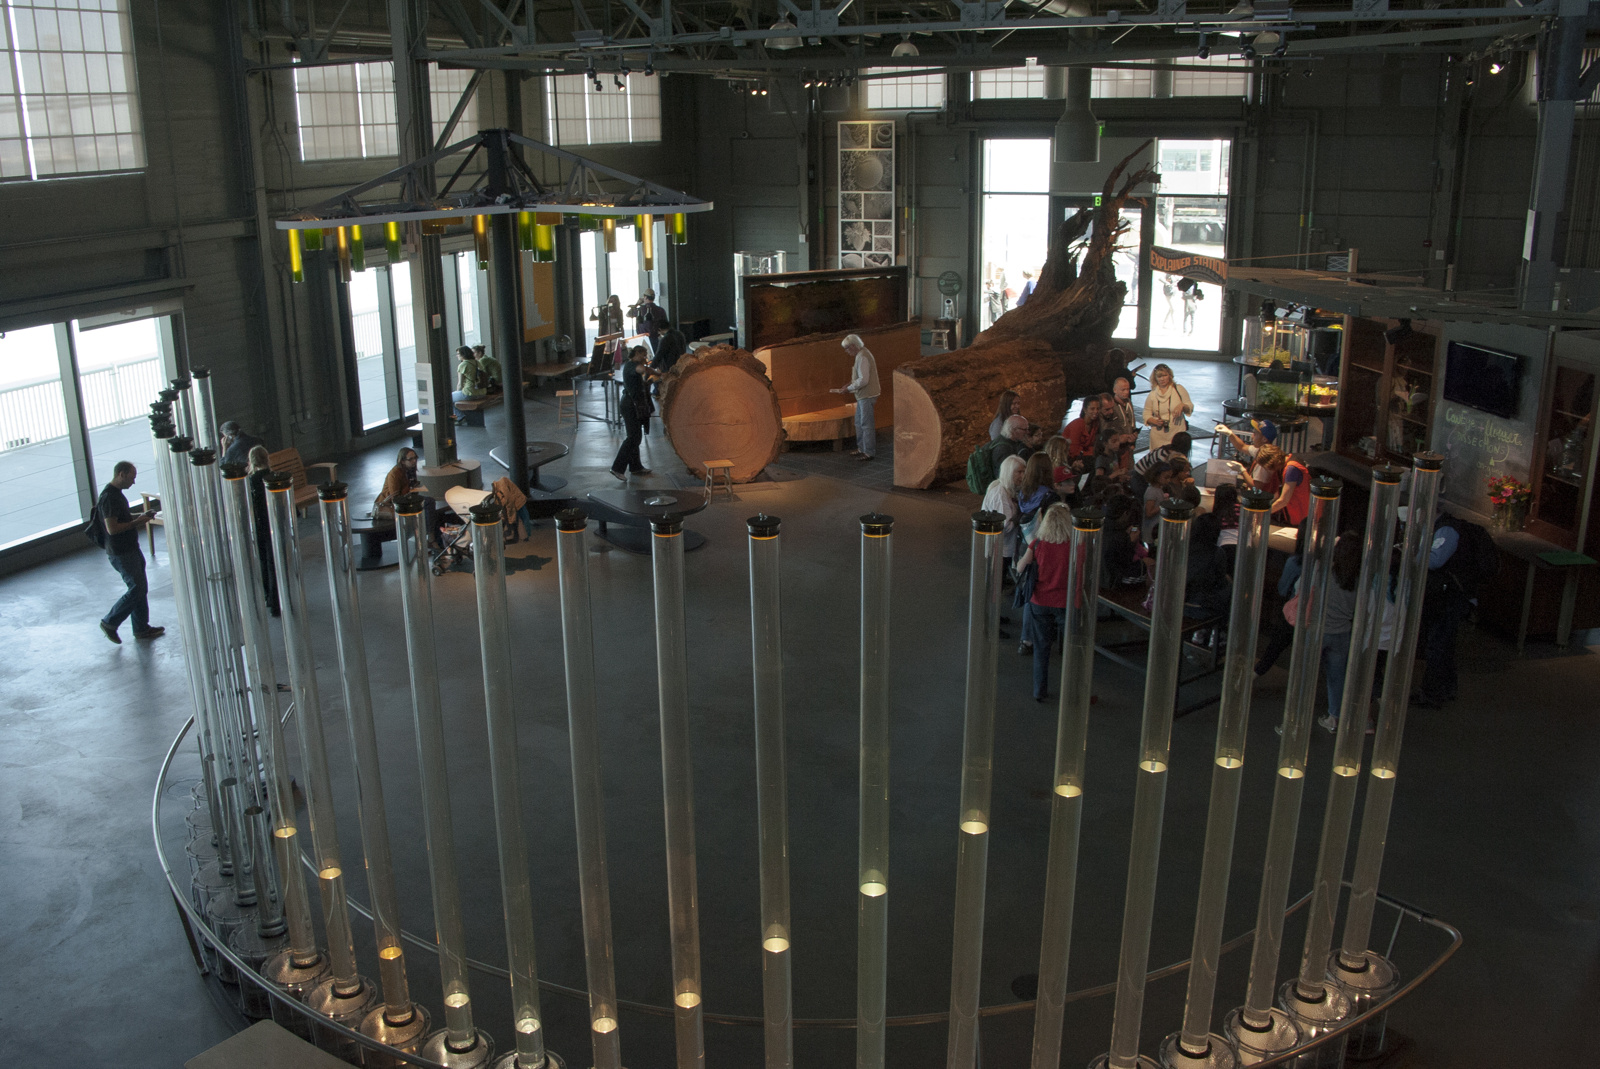 Tidal Memory exhibit at Exploratorium in San Francisco, 24 columns of water reflecting the tide in the SF Bay for the previous day